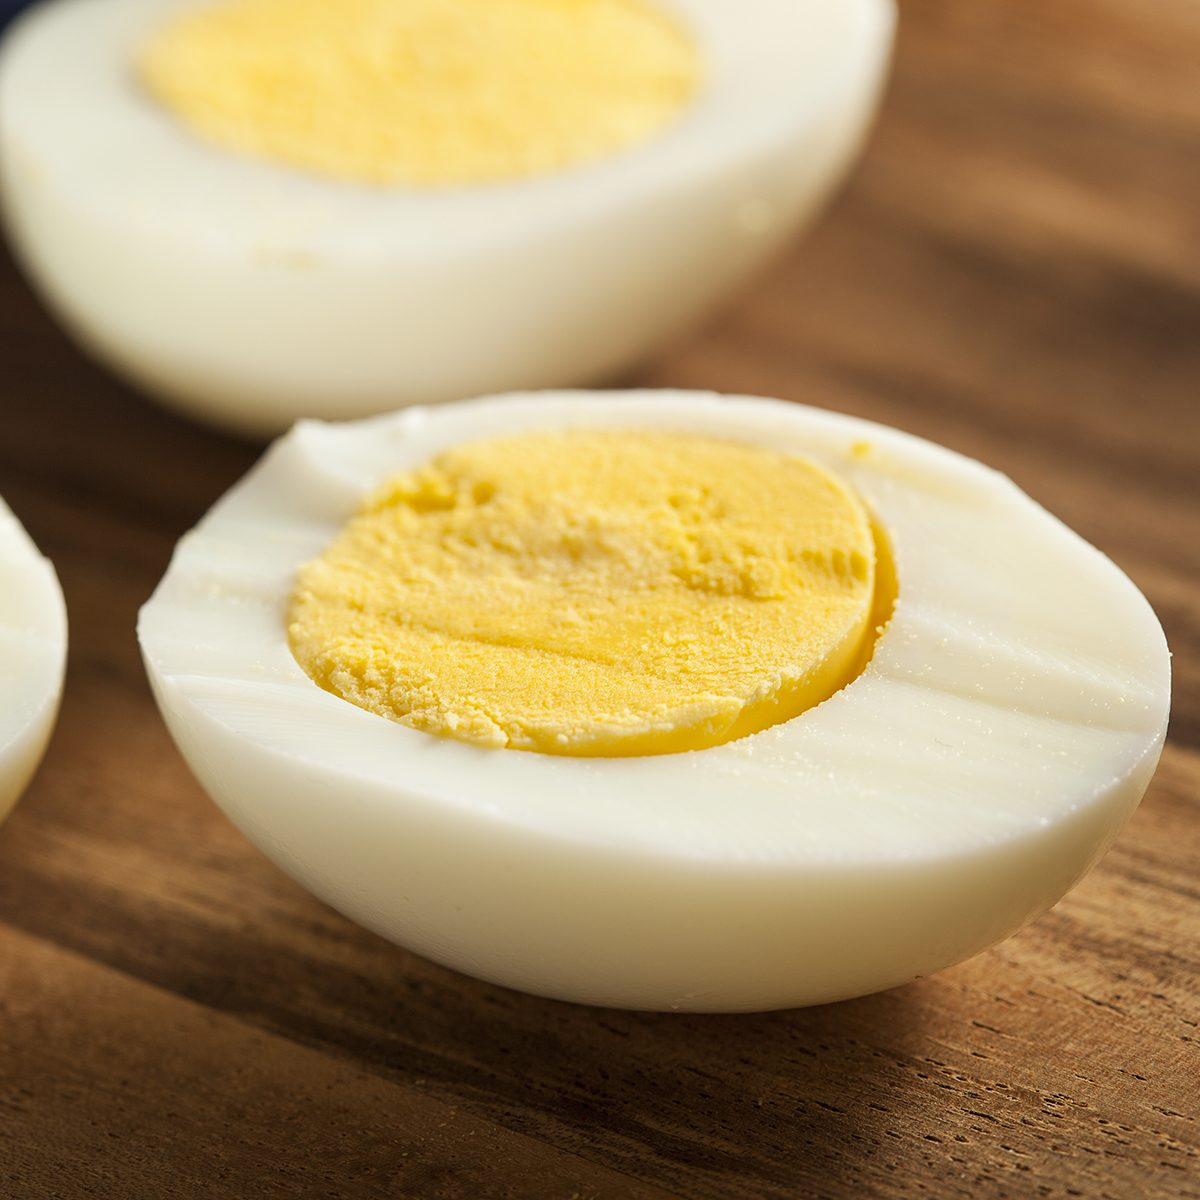 Organic Hard Boiled Eggs Ready to Eat; Shutterstock ID 179891711